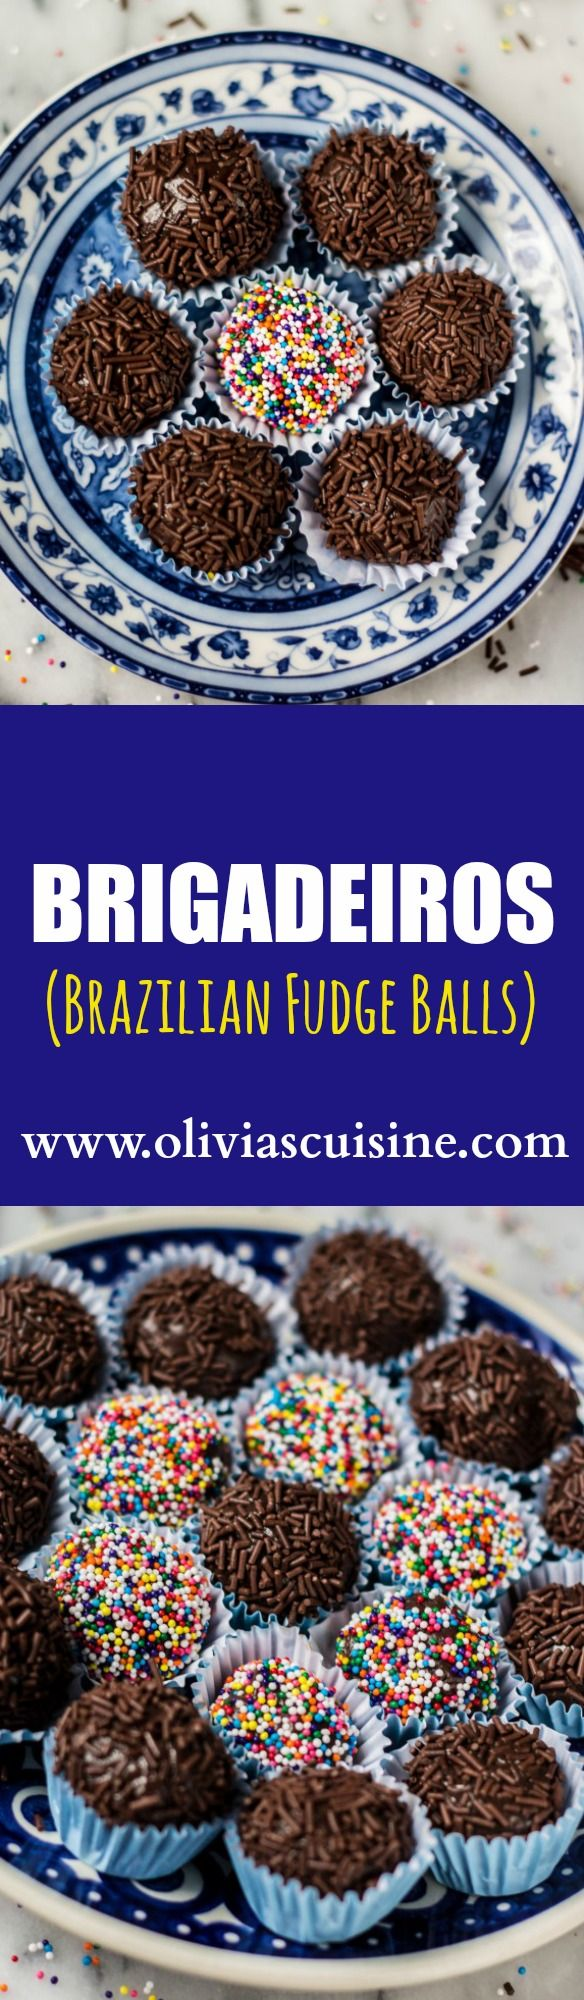 Traditional Brigadeiro (Brazilian Fudge Balls) | www.oliviascuisine.com | Brazil's favorite dessert: brigadeiro. Chocolate fudge balls made with sweet condensed milk, butter and cocoa powder. So addicting!